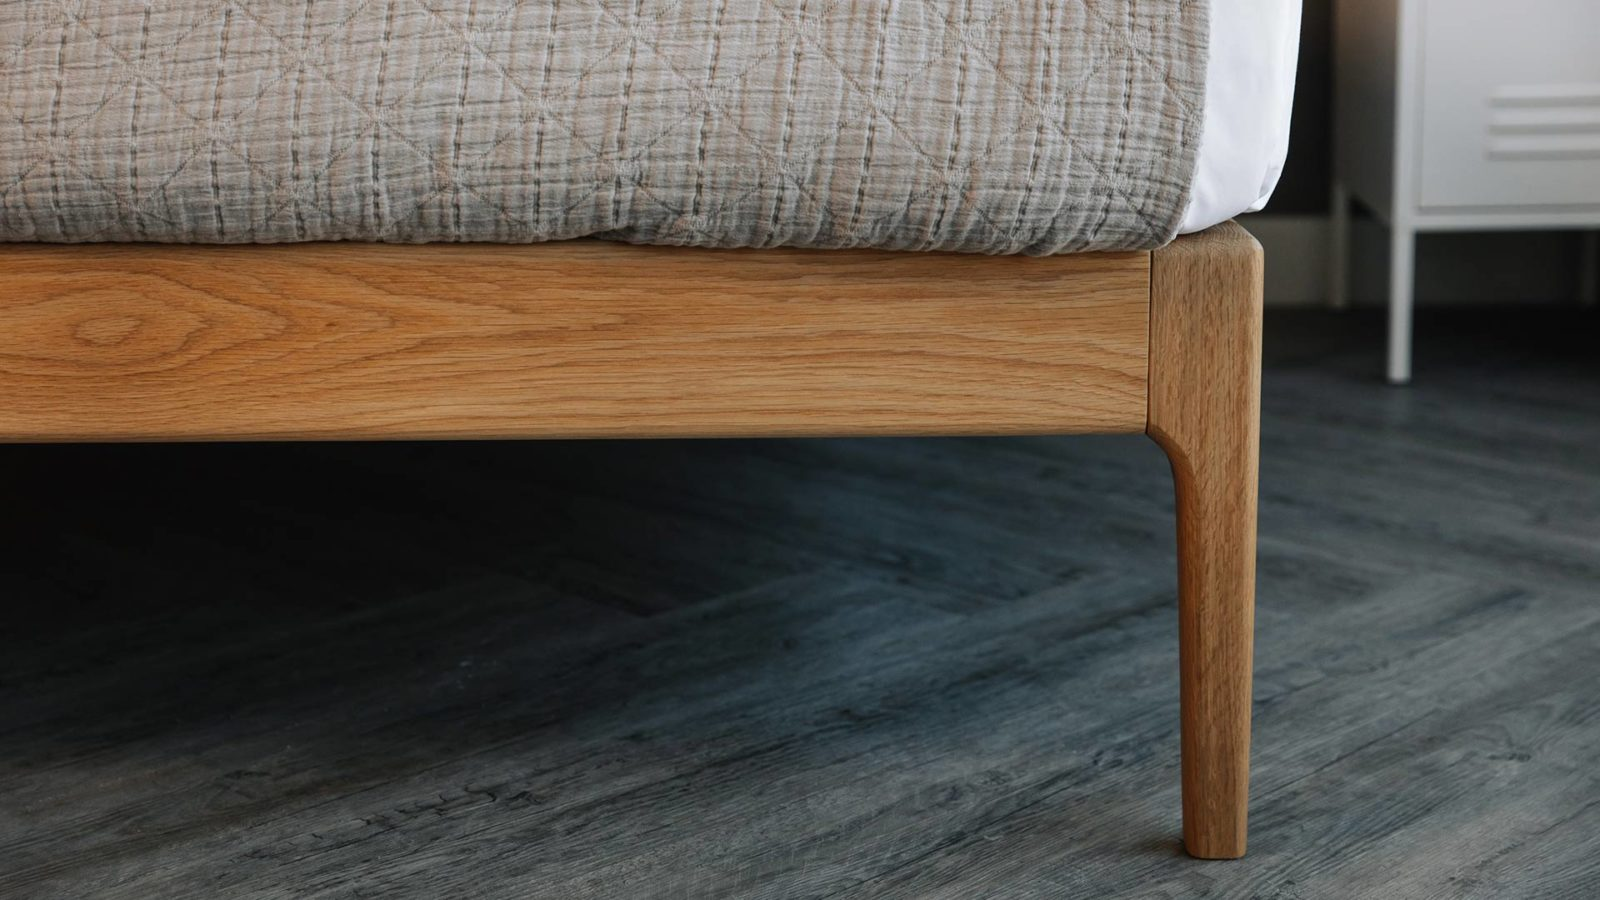 close-up pic of the curving solid wood Bloomsbury bed leg